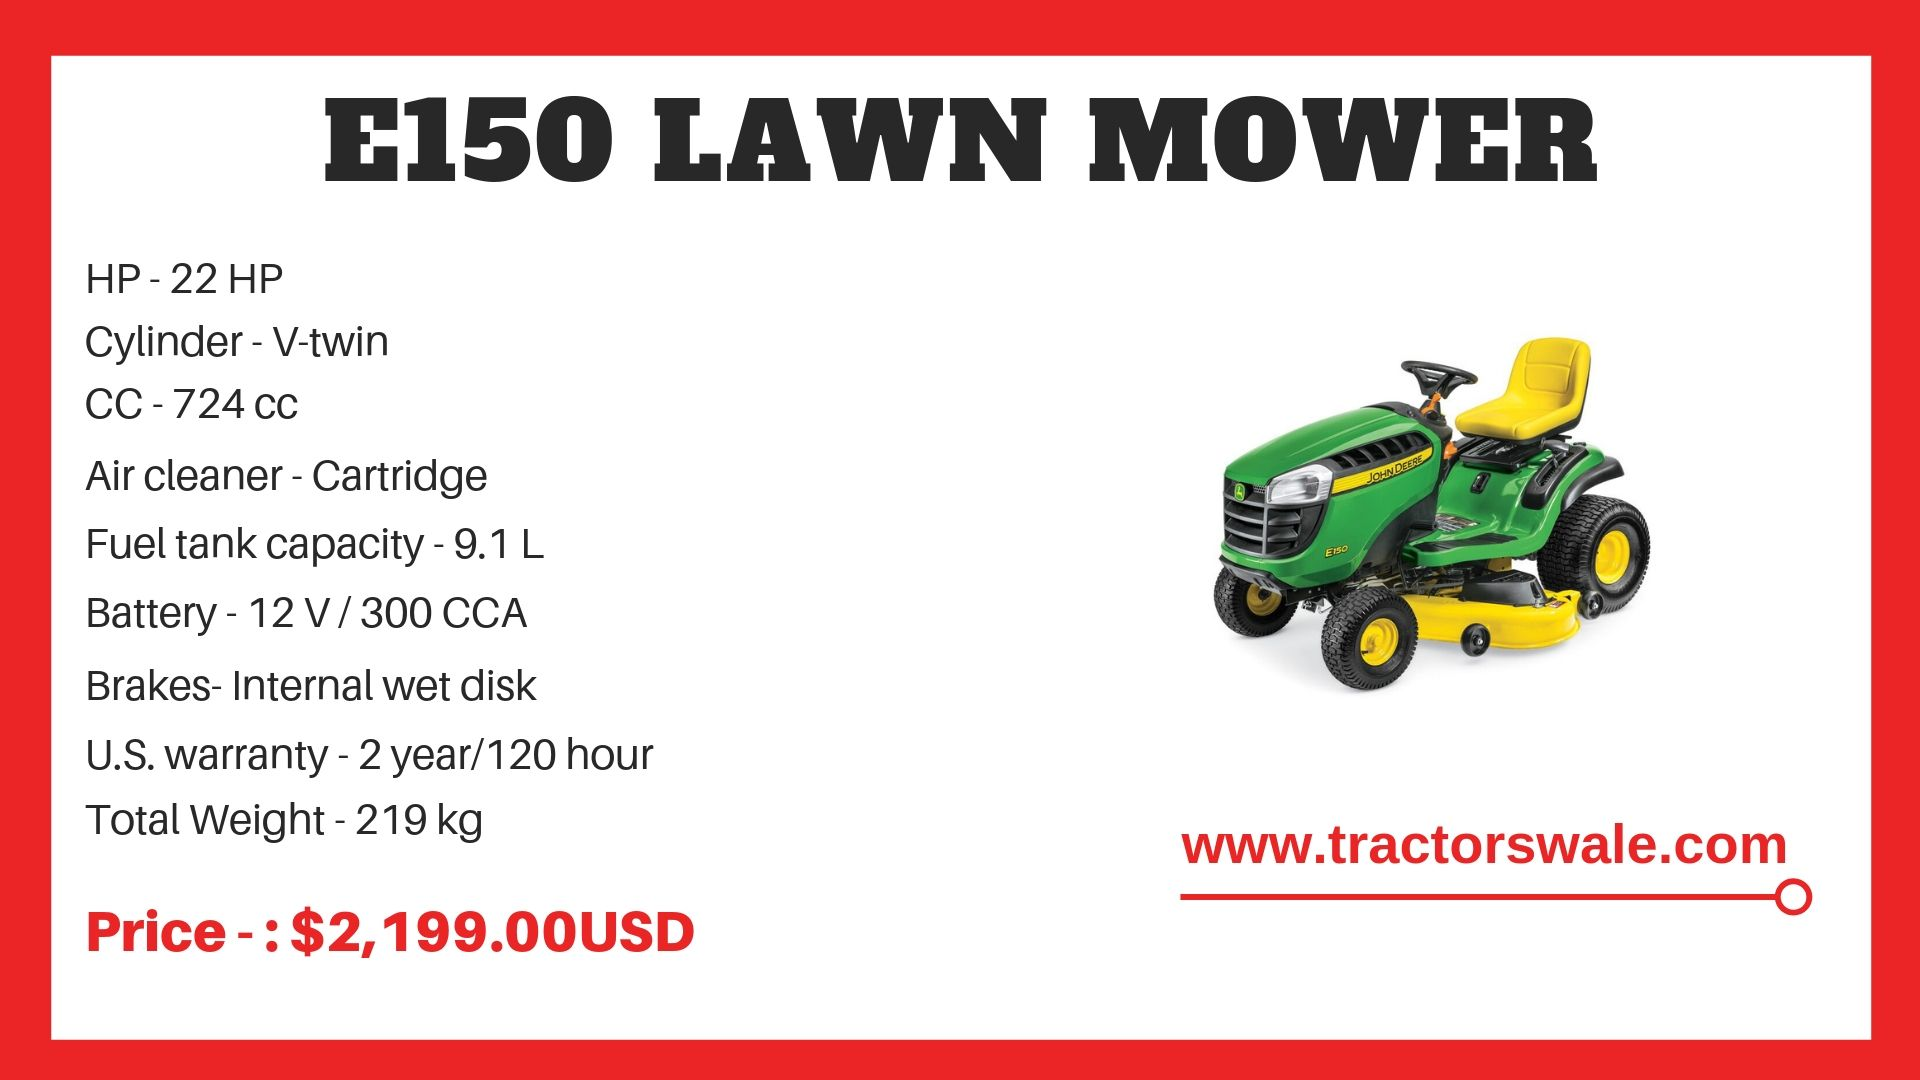 John Deere Tractor E150 Specifications